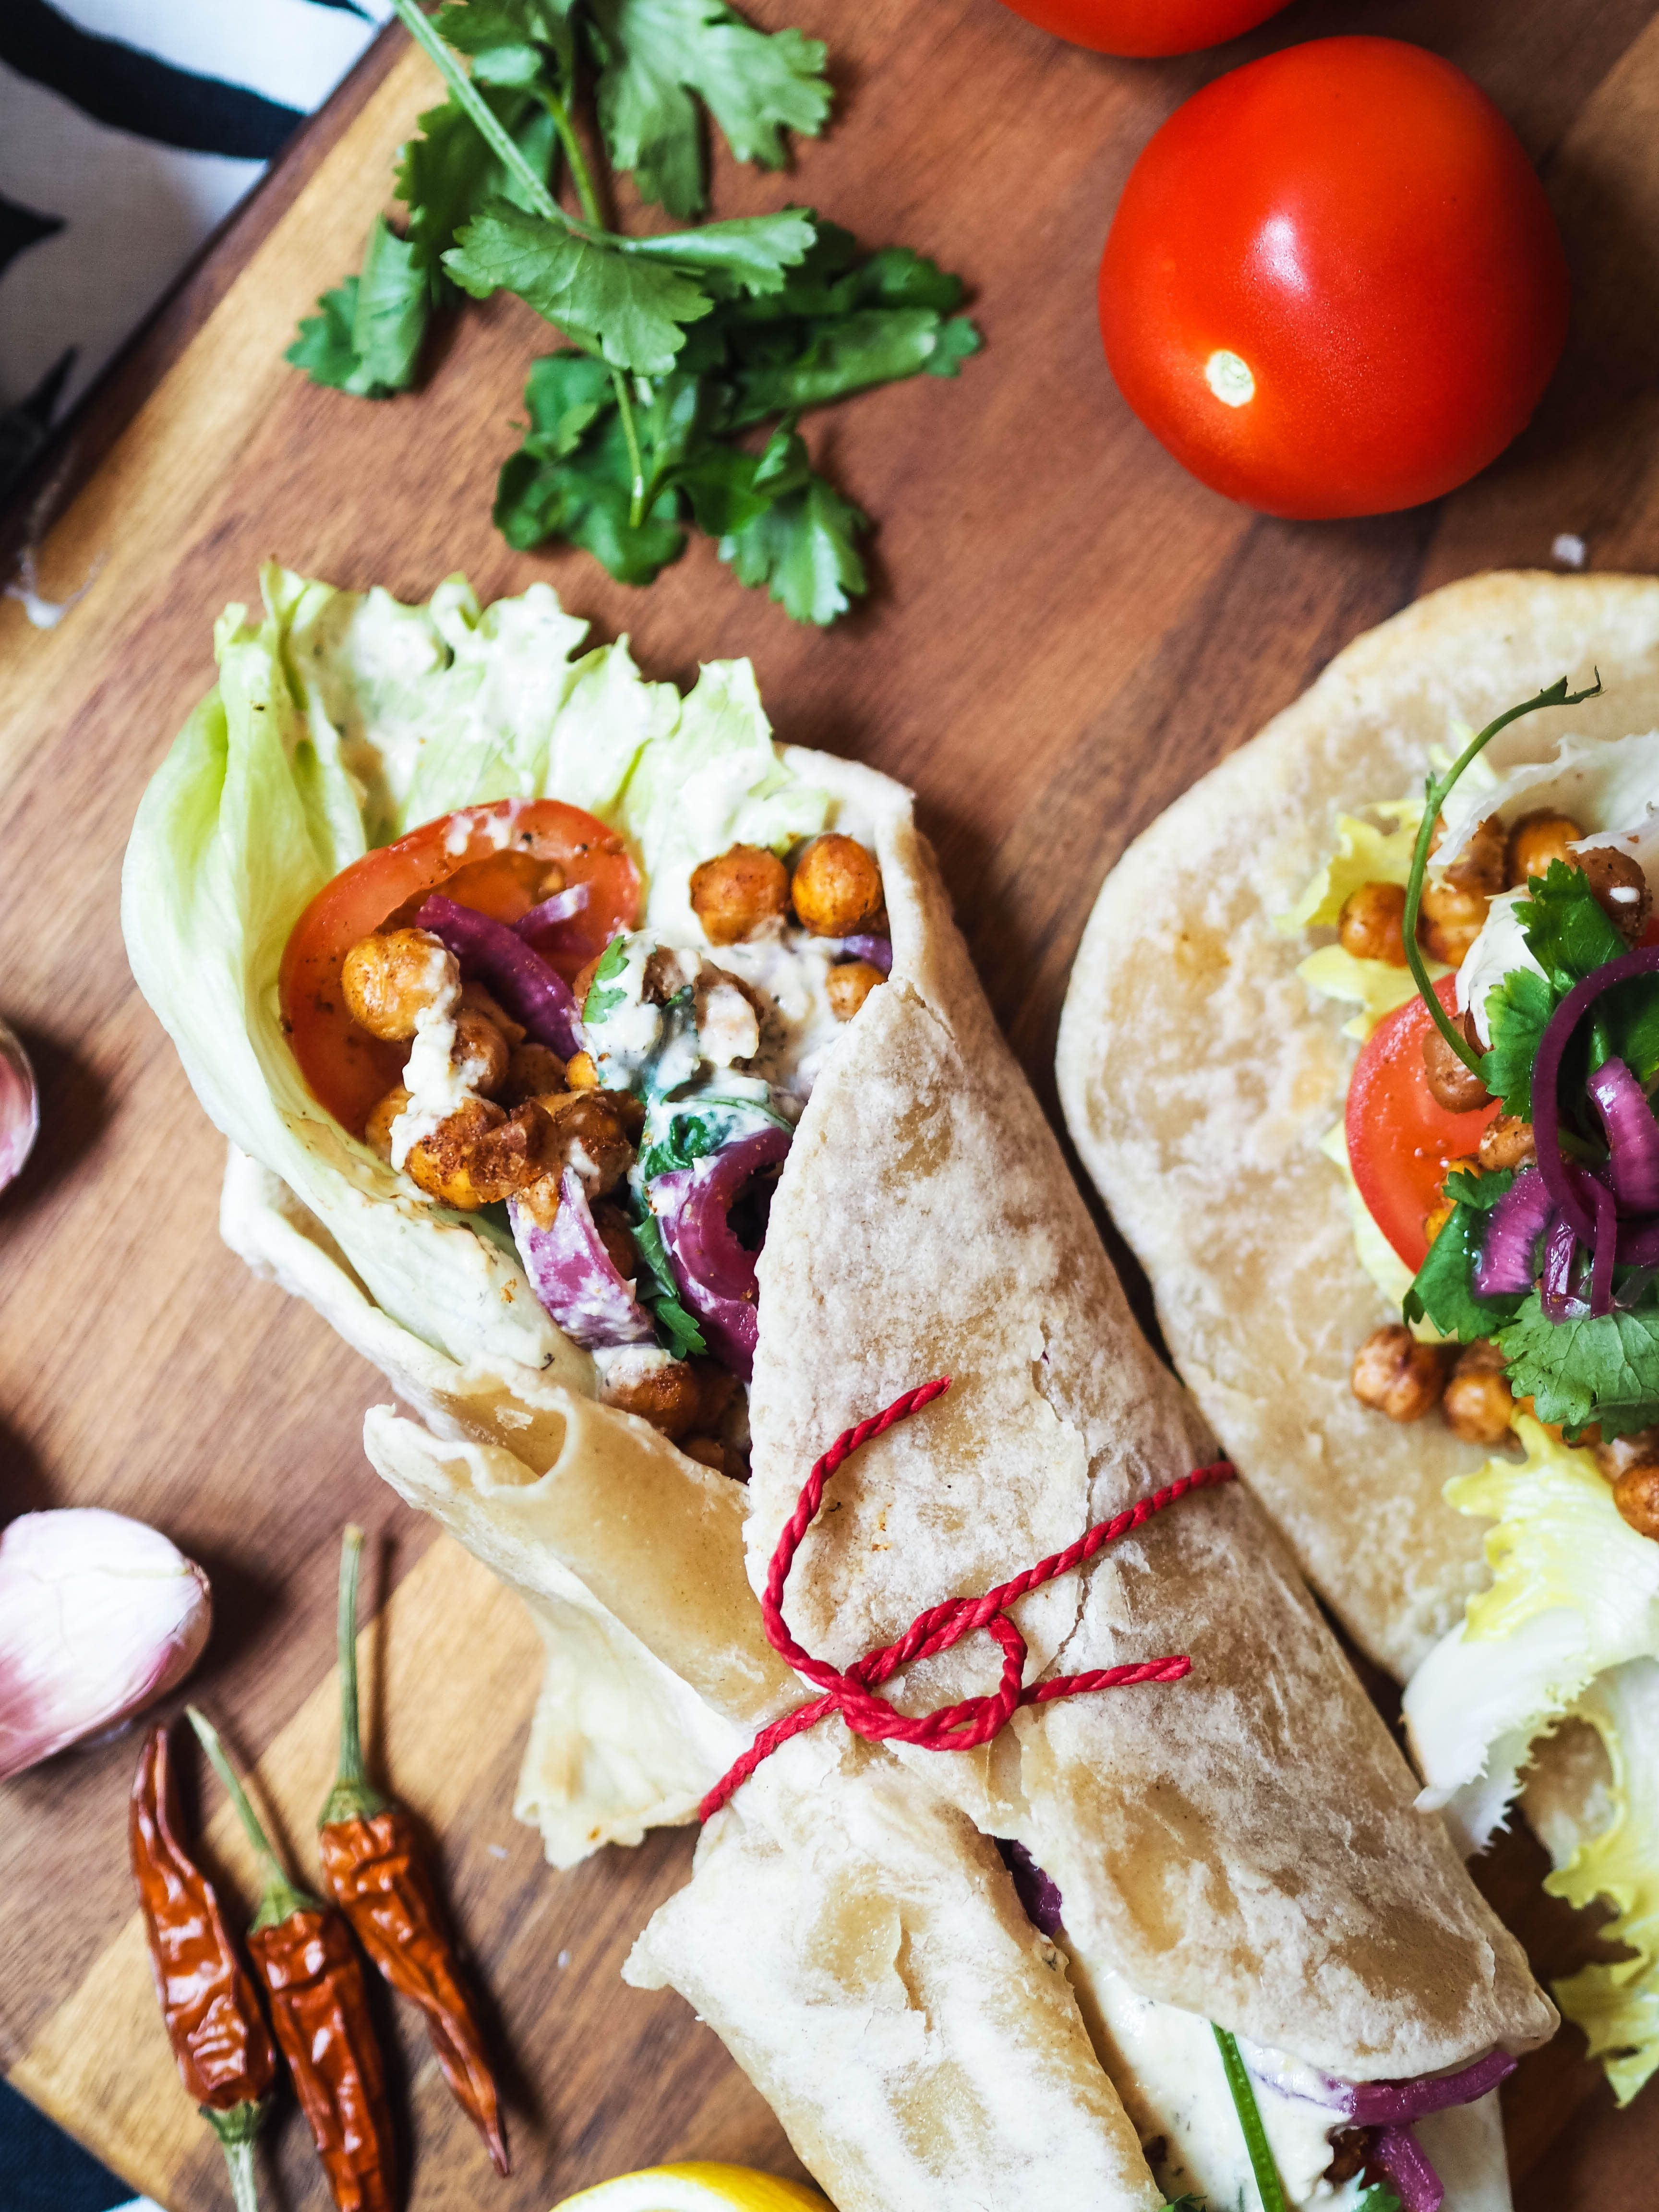 The best ever chickpea wrap - middle eastern style!